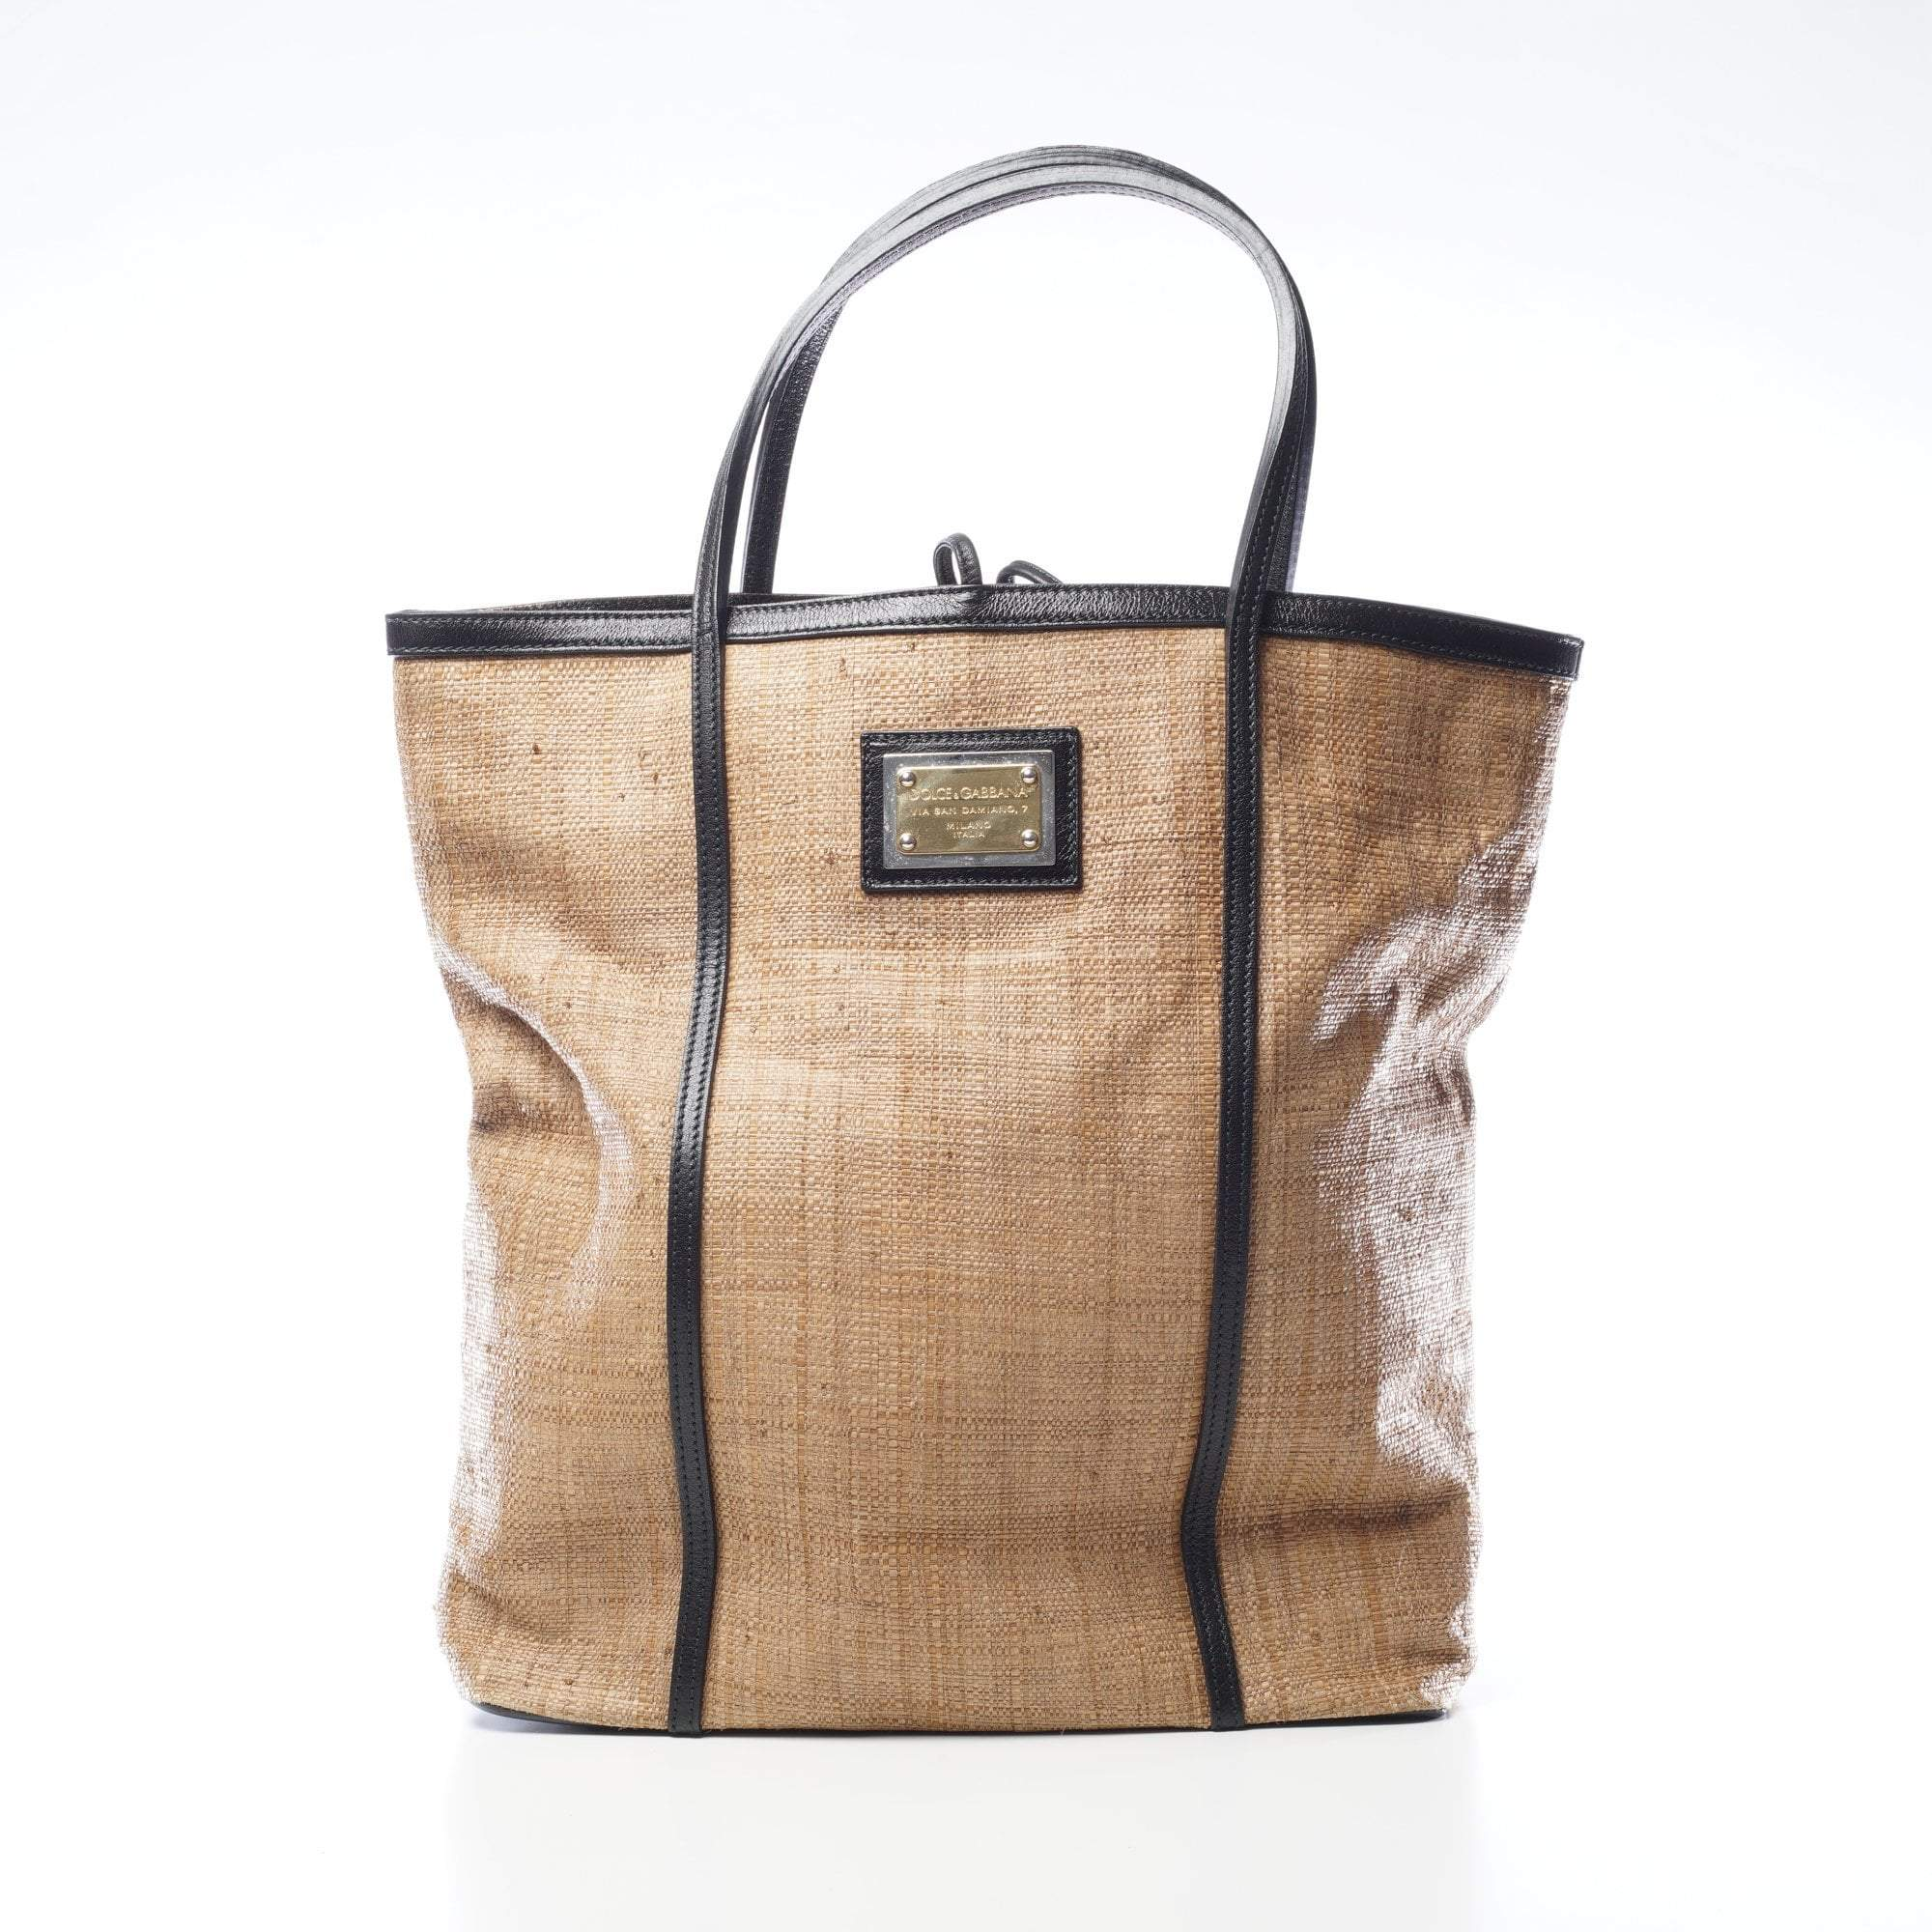 Dolce & Gabbana Oversized Straw Tote Bag